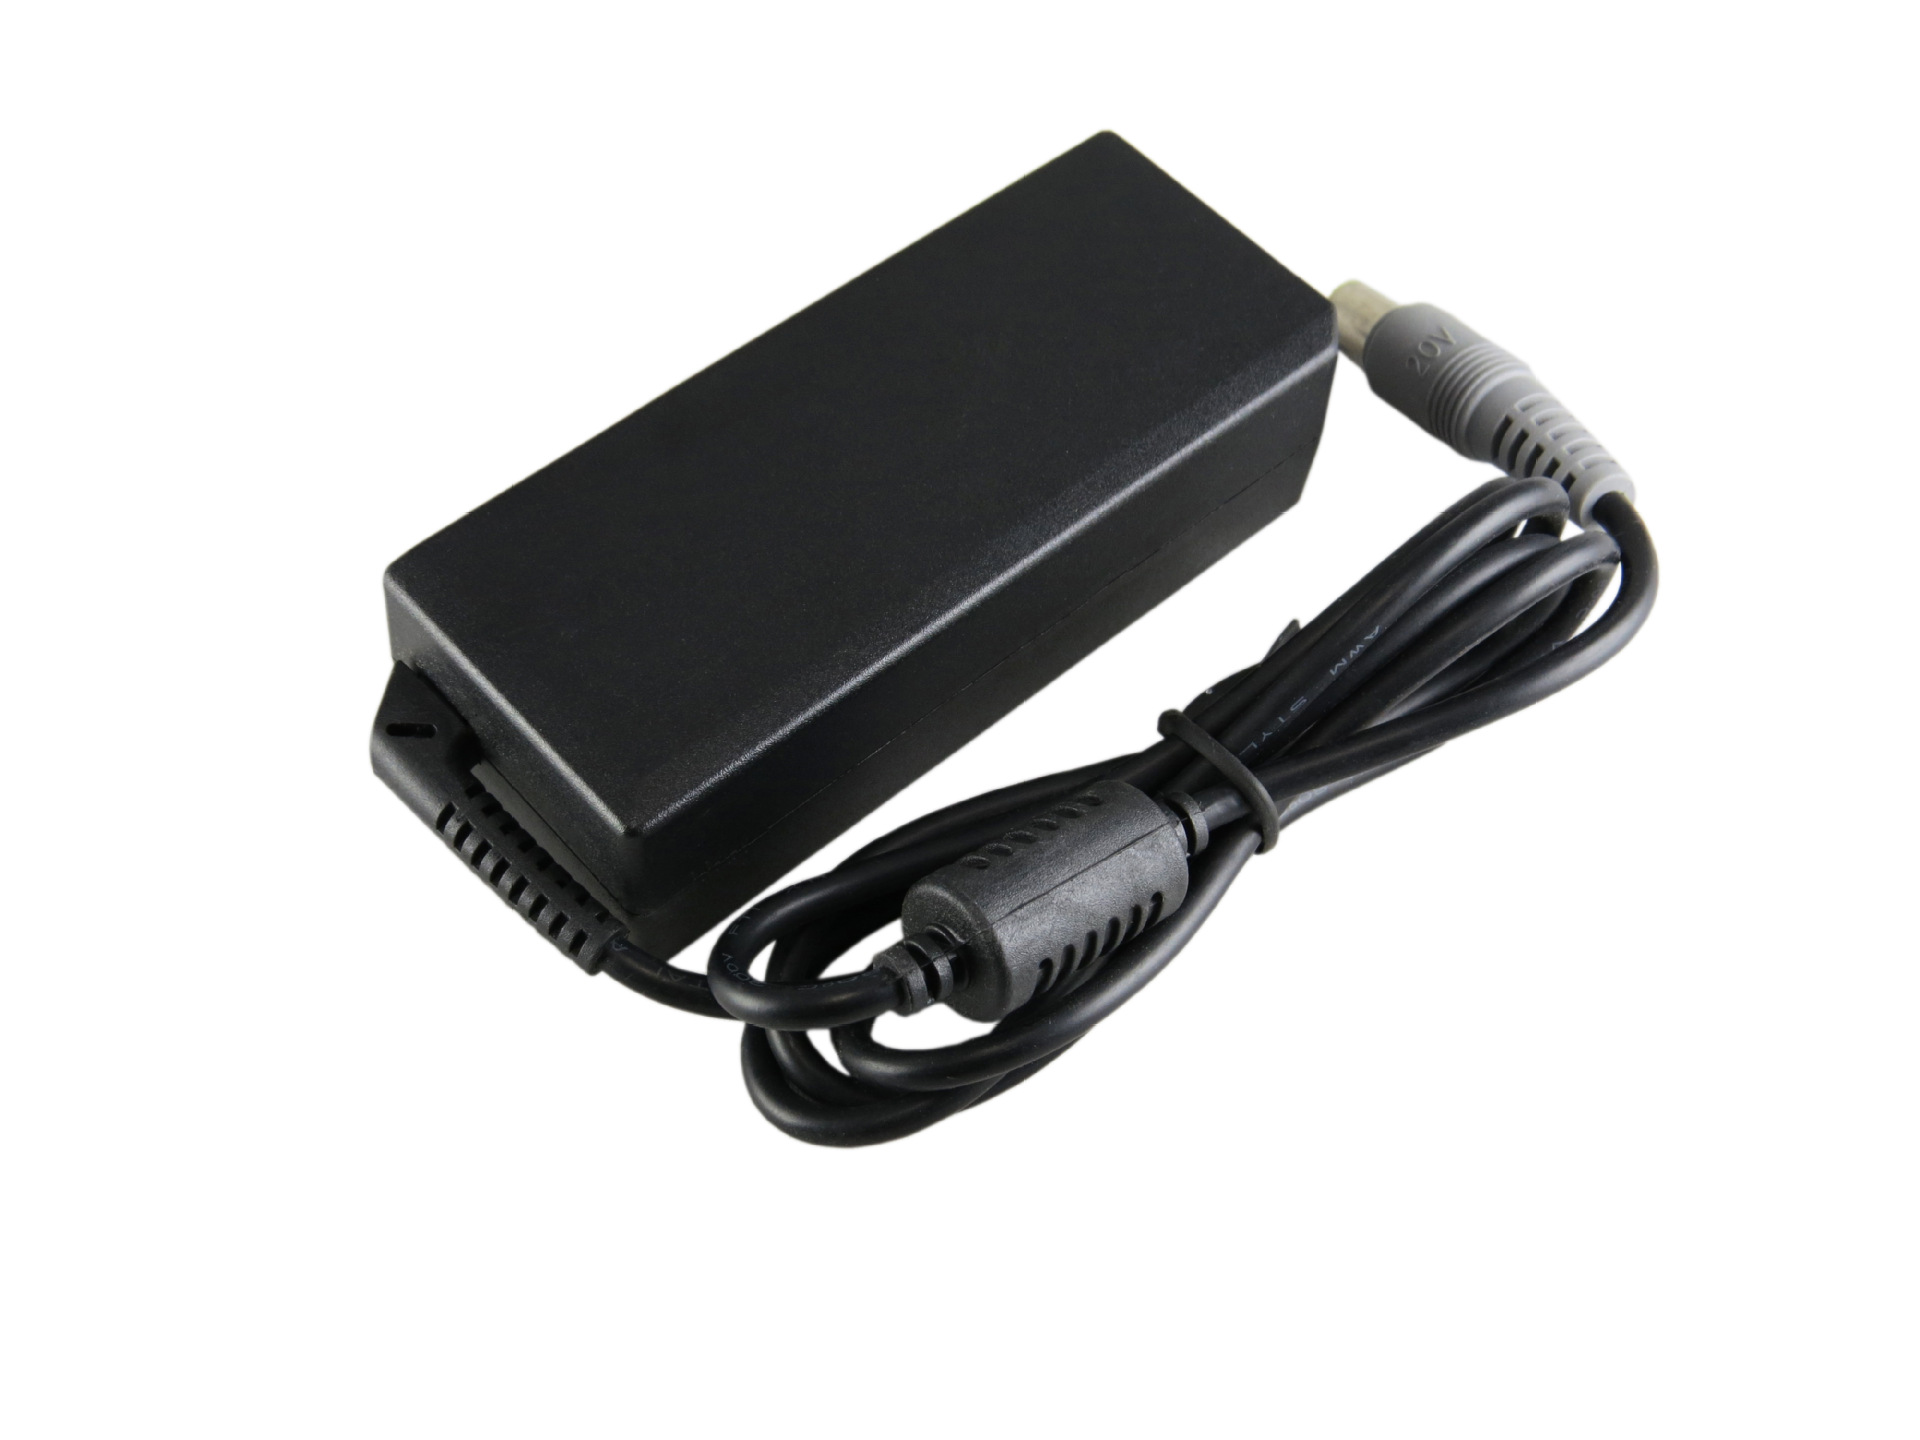 20V 3.25A 65 W Laptop Ac Power Adapter ładowarka do Lenovo T410 T510 Sl410 Sl410K Sl510 Sl510K T510I X201 X220 X230